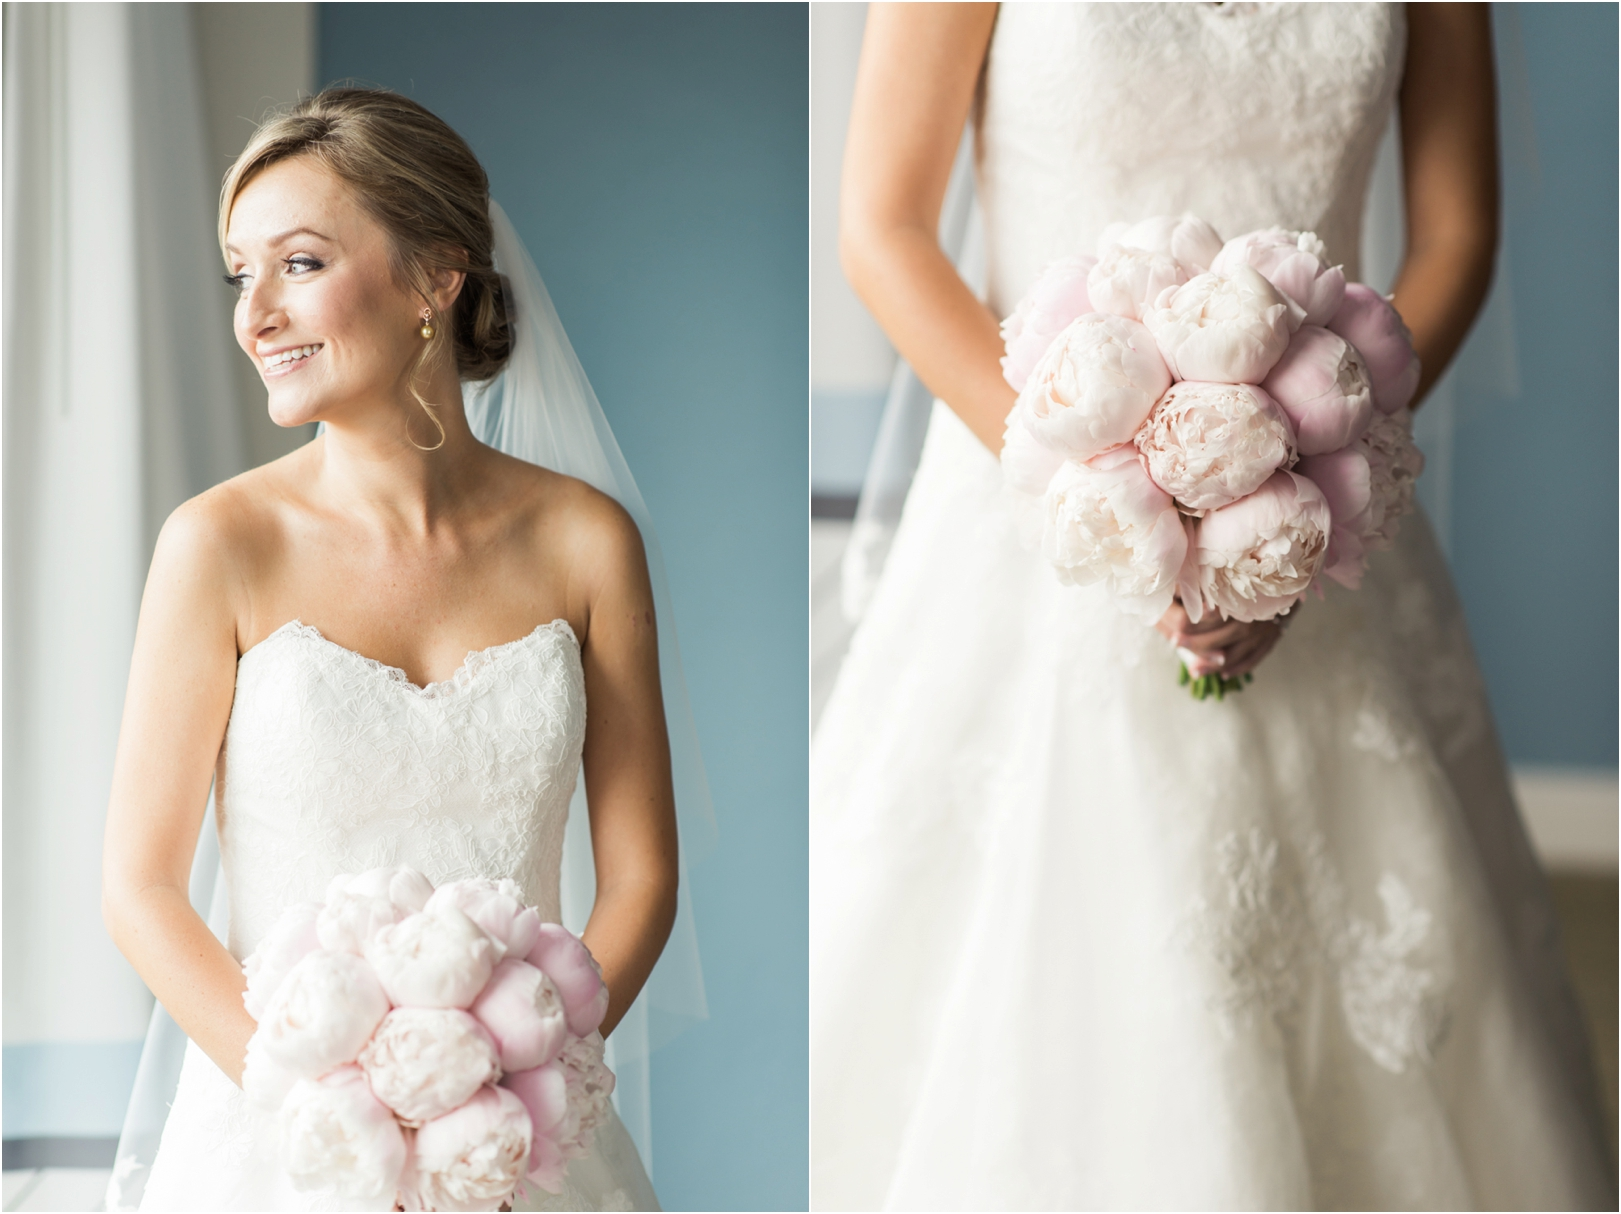 bride-with-bouquet-windowlight-